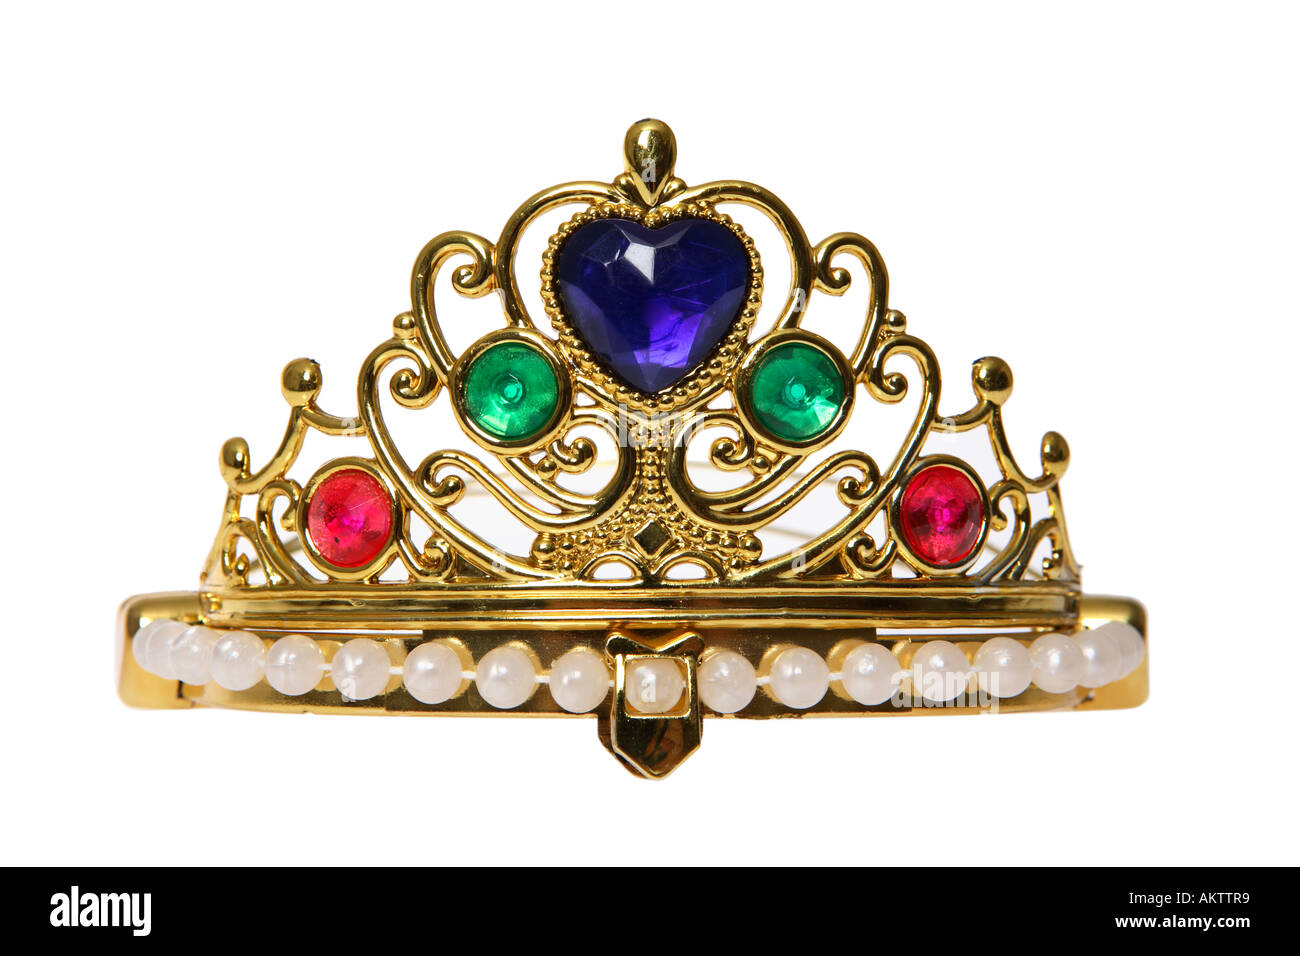 Princess Crown - Stock Image